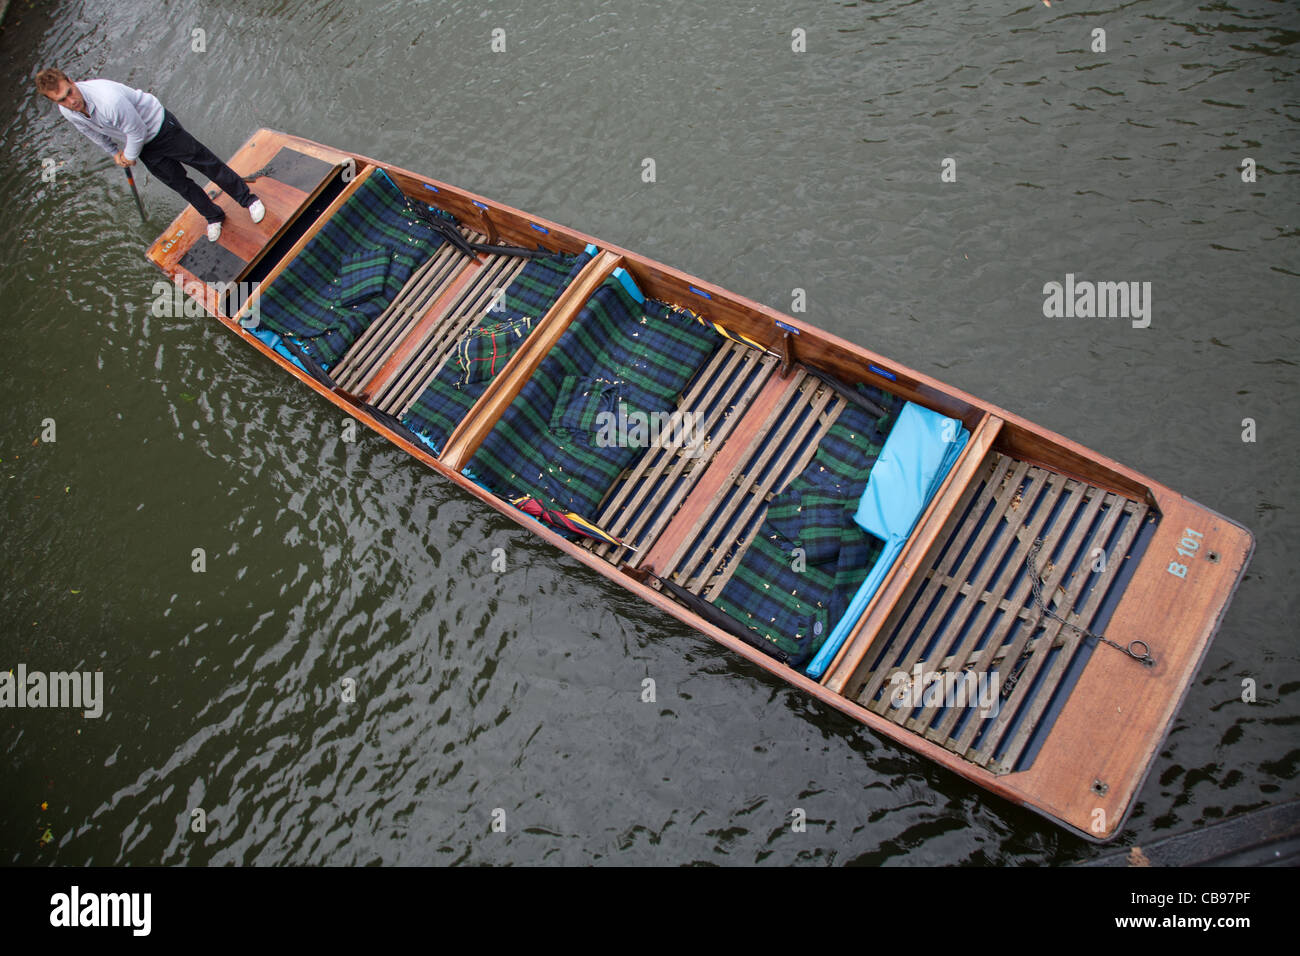 Punting in Cambridge, UK - Stock Image